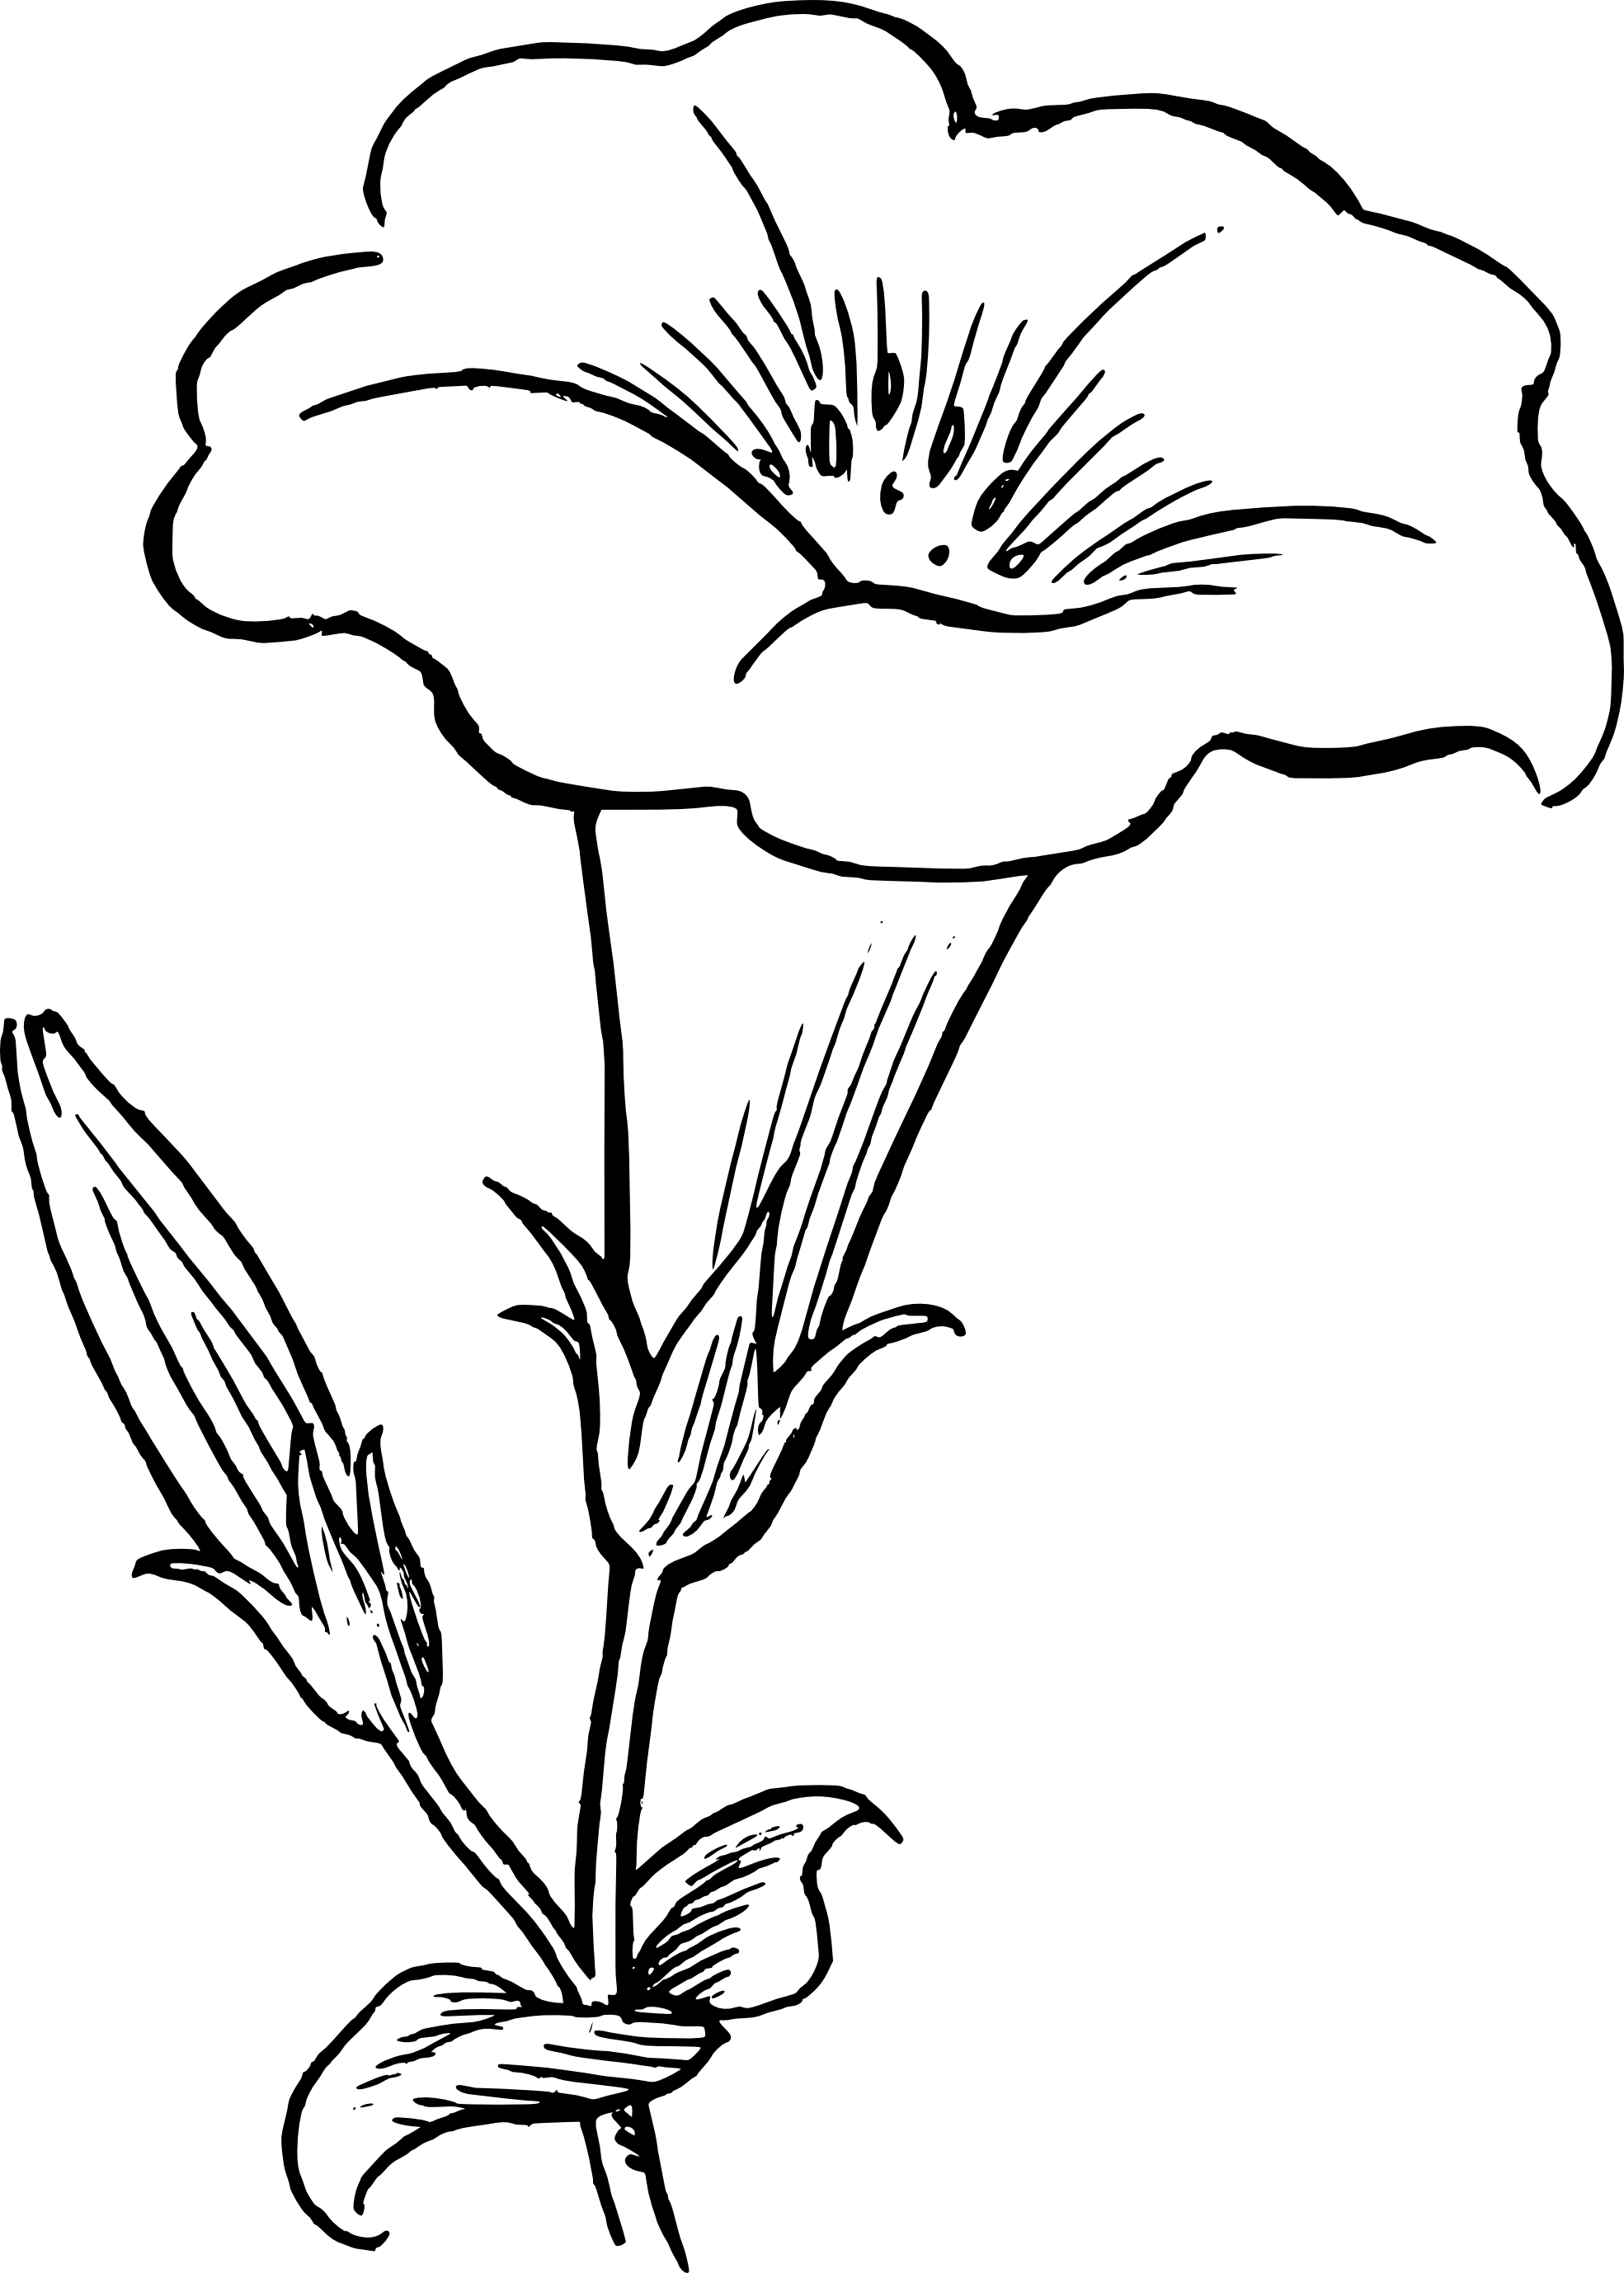 Rose flower clipart black and white clip art transparent Black And White Flower Drawing | Clipart Panda - Free Clipart Images ... clip art transparent